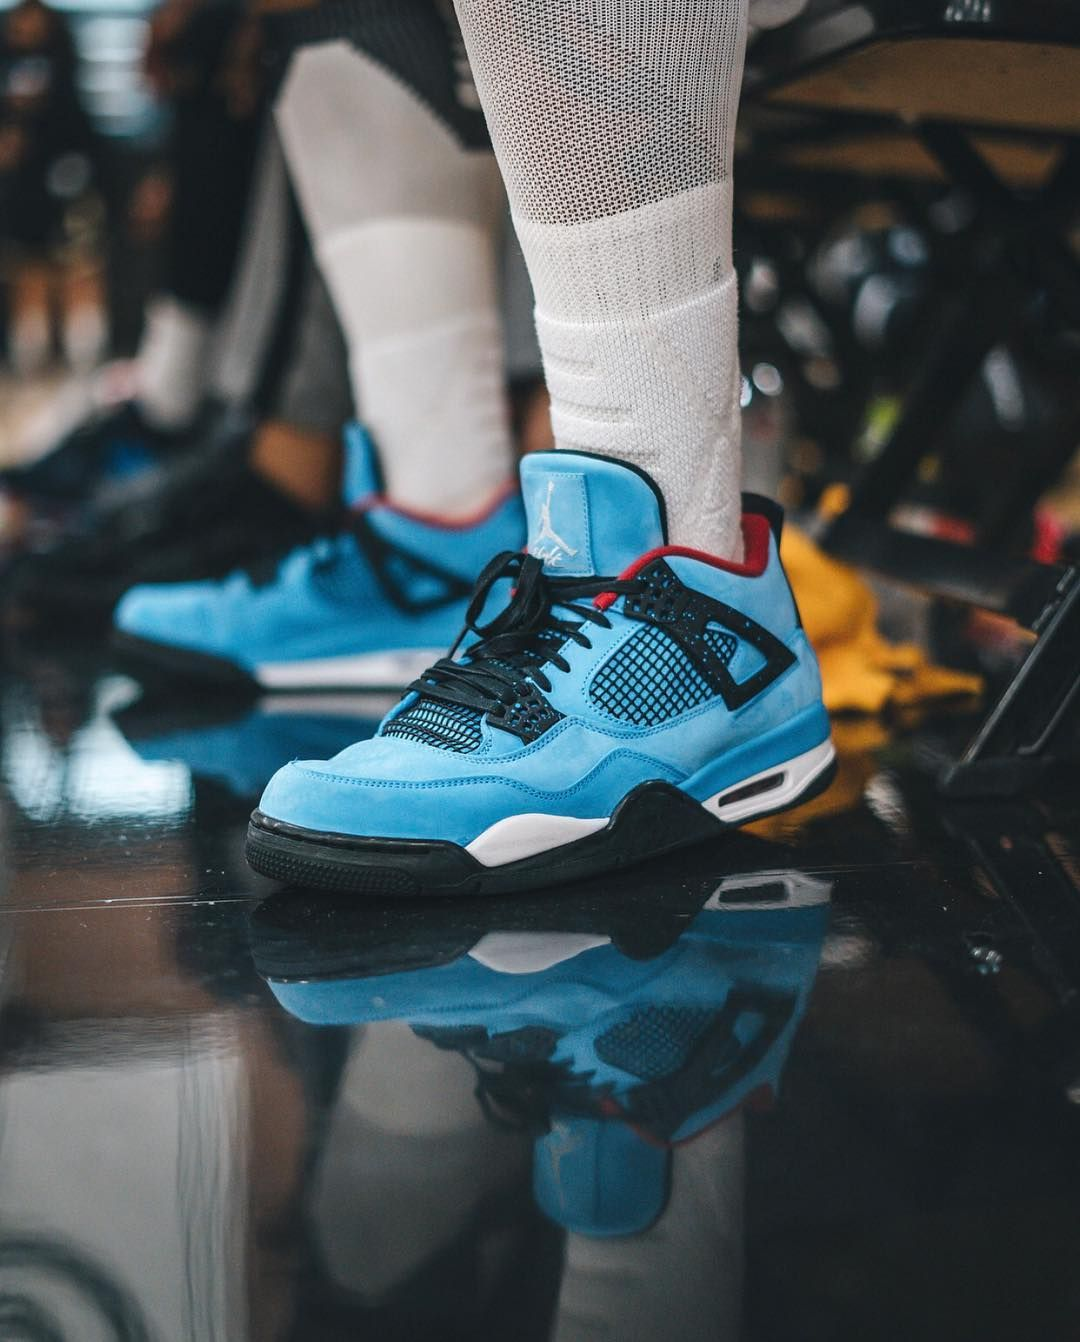 1ff1ff0cb107b Travis Scott x Air Jordan 4 Cactus Jack Houston Oilers 308497-406 ...